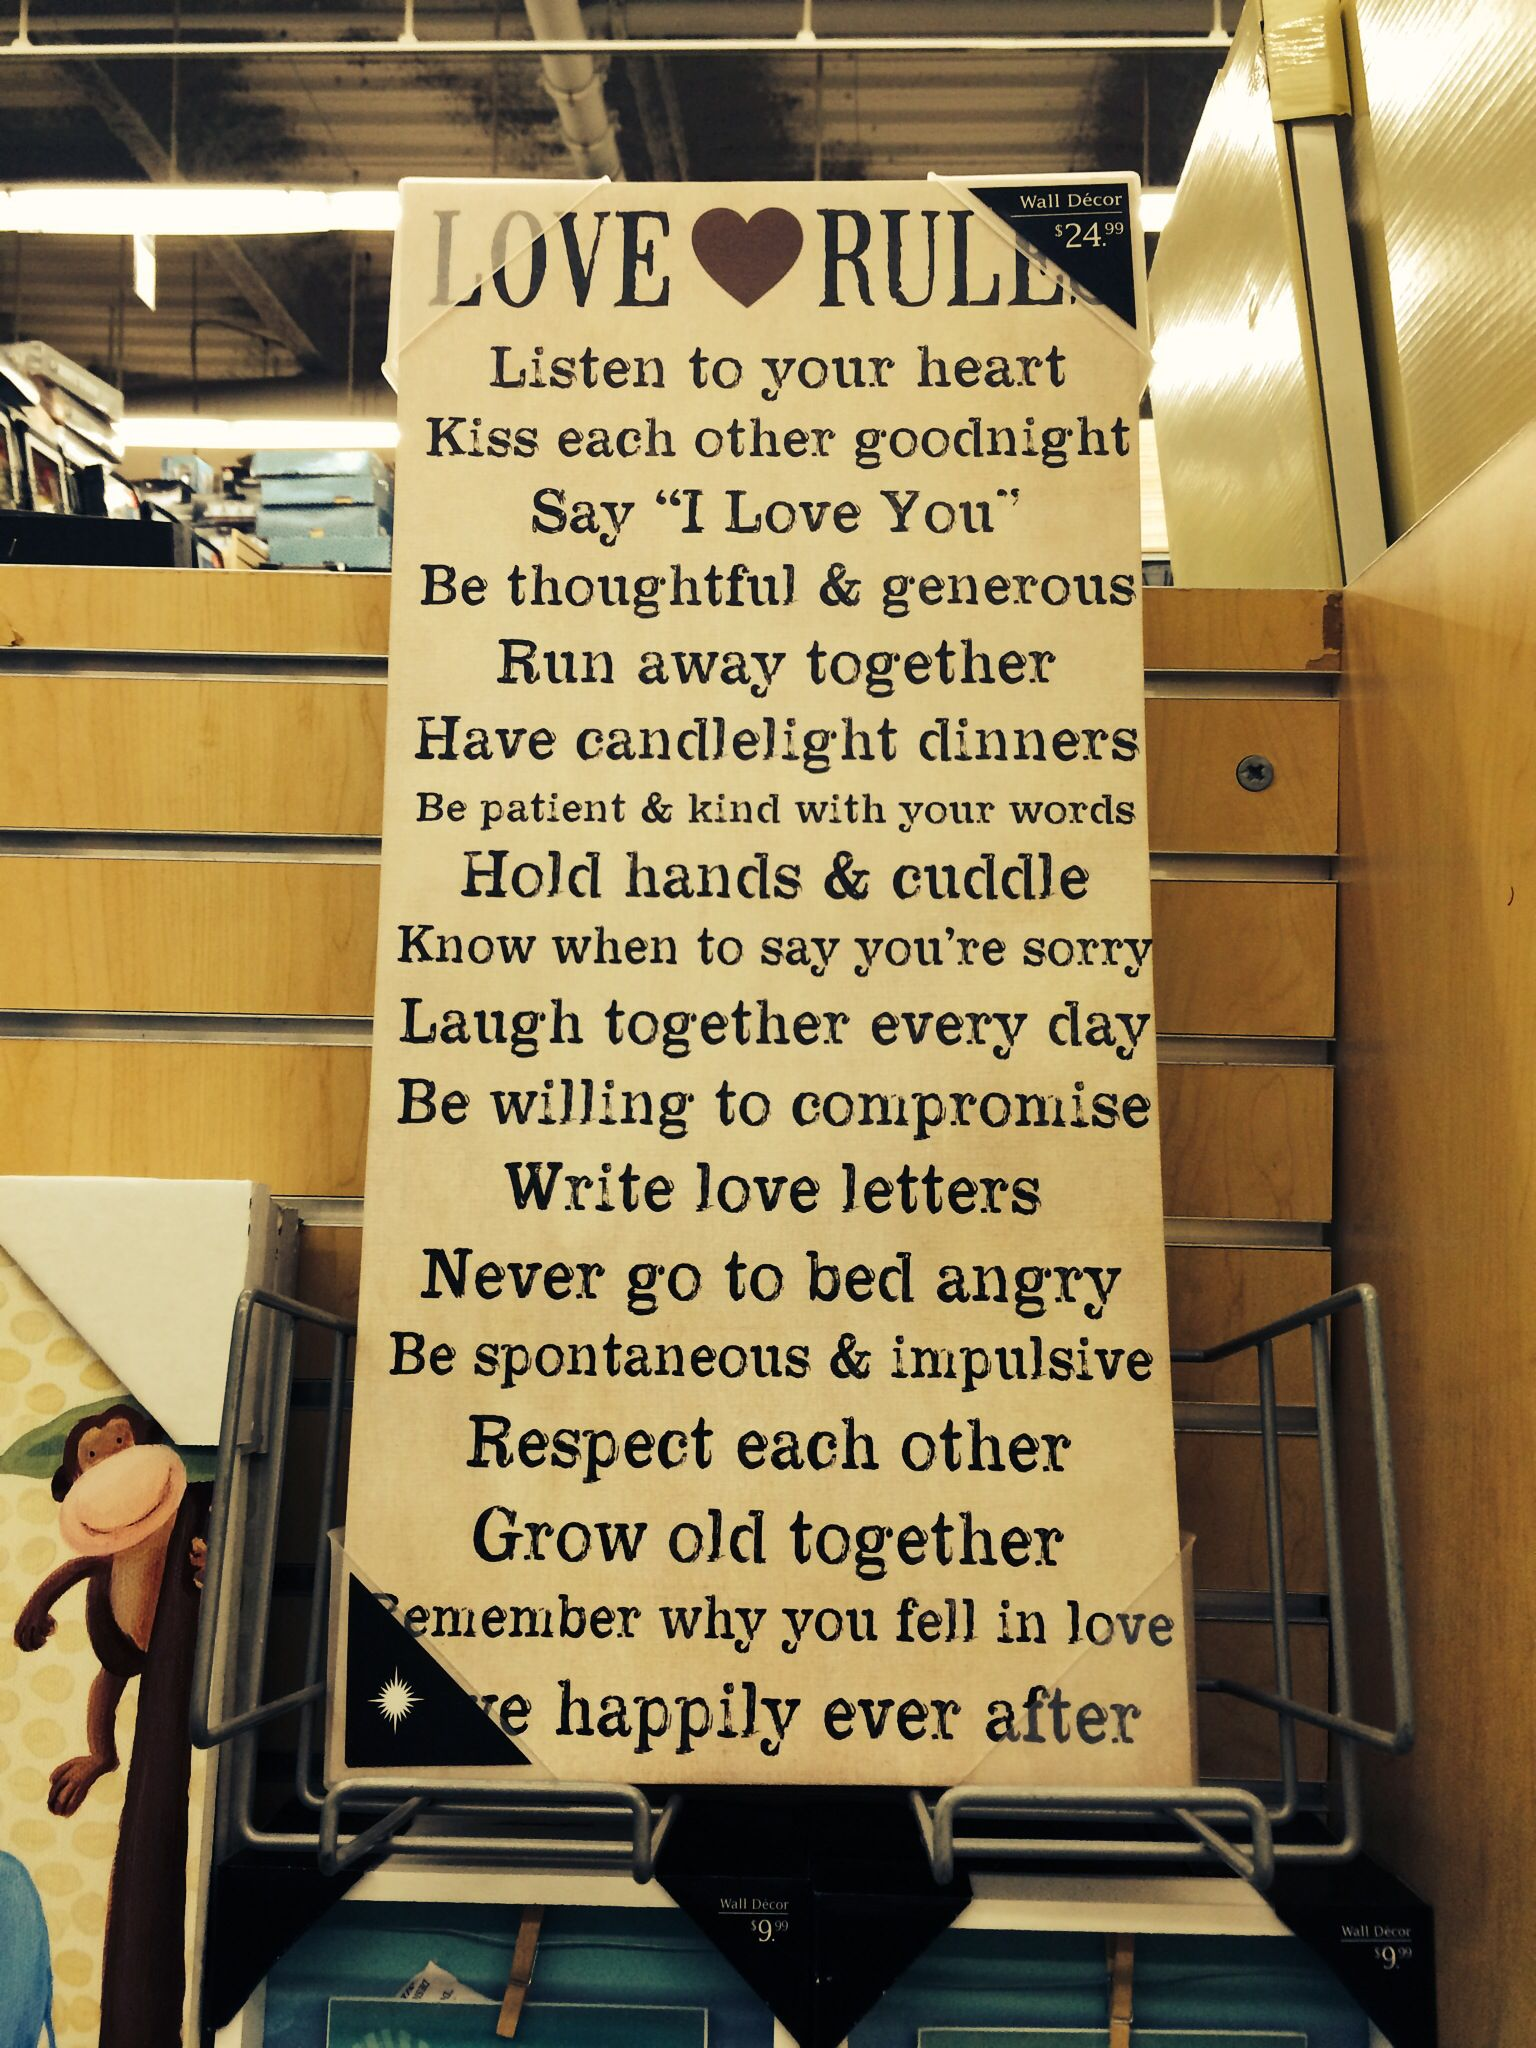 rules of love. bed bath and beyond.   For the Home   Pinterest   Bath